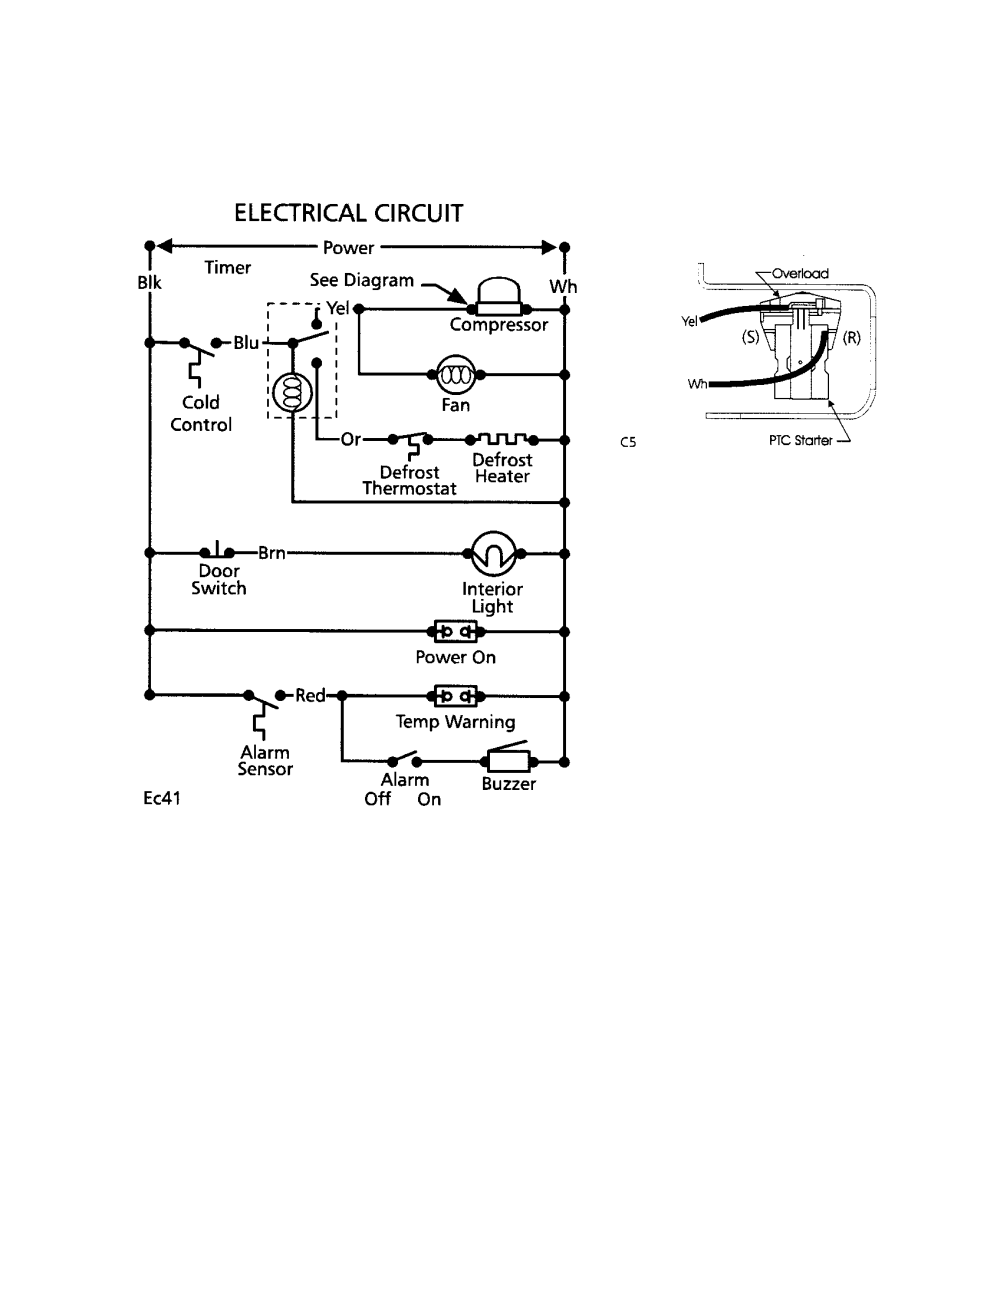 medium resolution of reach in freezer wiring diagram wiring diagram expert randell reach in freezer wiring diagram reach in freezer wiring diagram